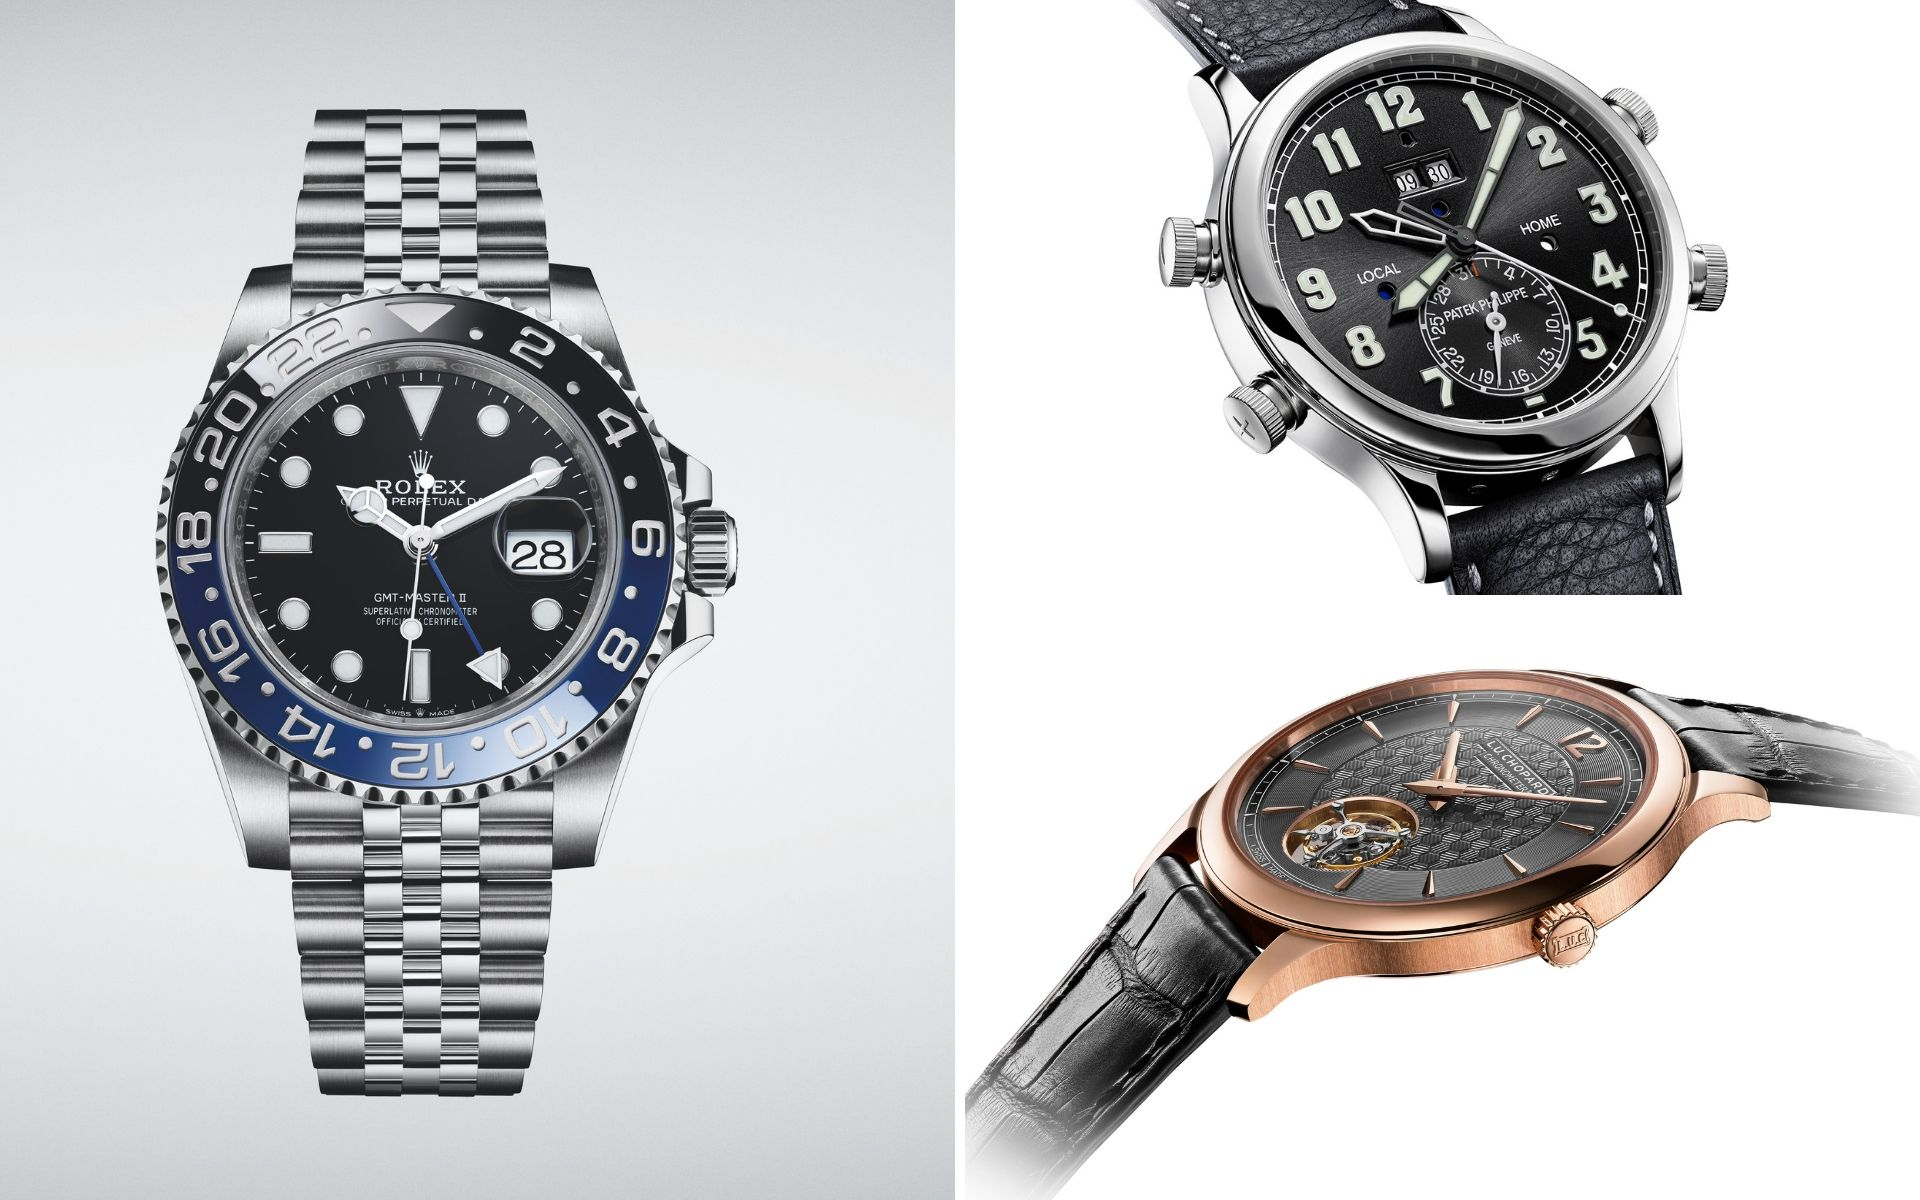 10 Watches That Caught Our Attention At Baselworld 2019